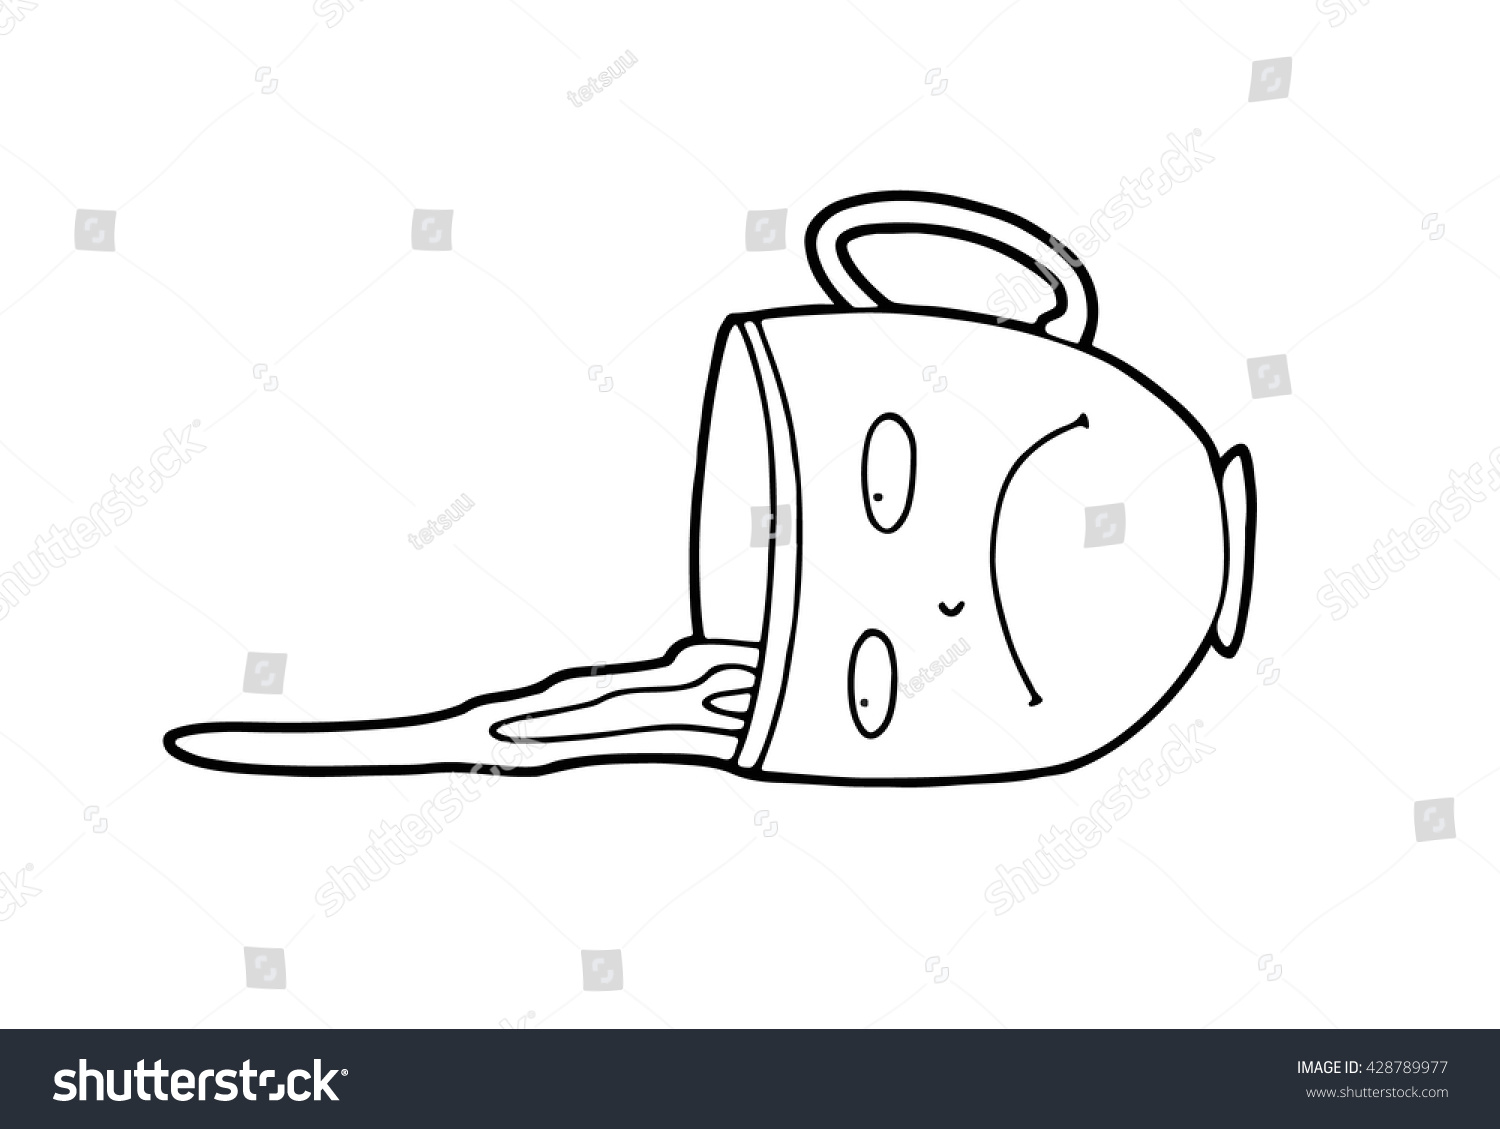 An Upset Sad Pessimistic Cartoon Cup Which Accidentally Was Pushed By Awkward Guest During A Tea Party Lies On Table In Puddle Of Spilled And